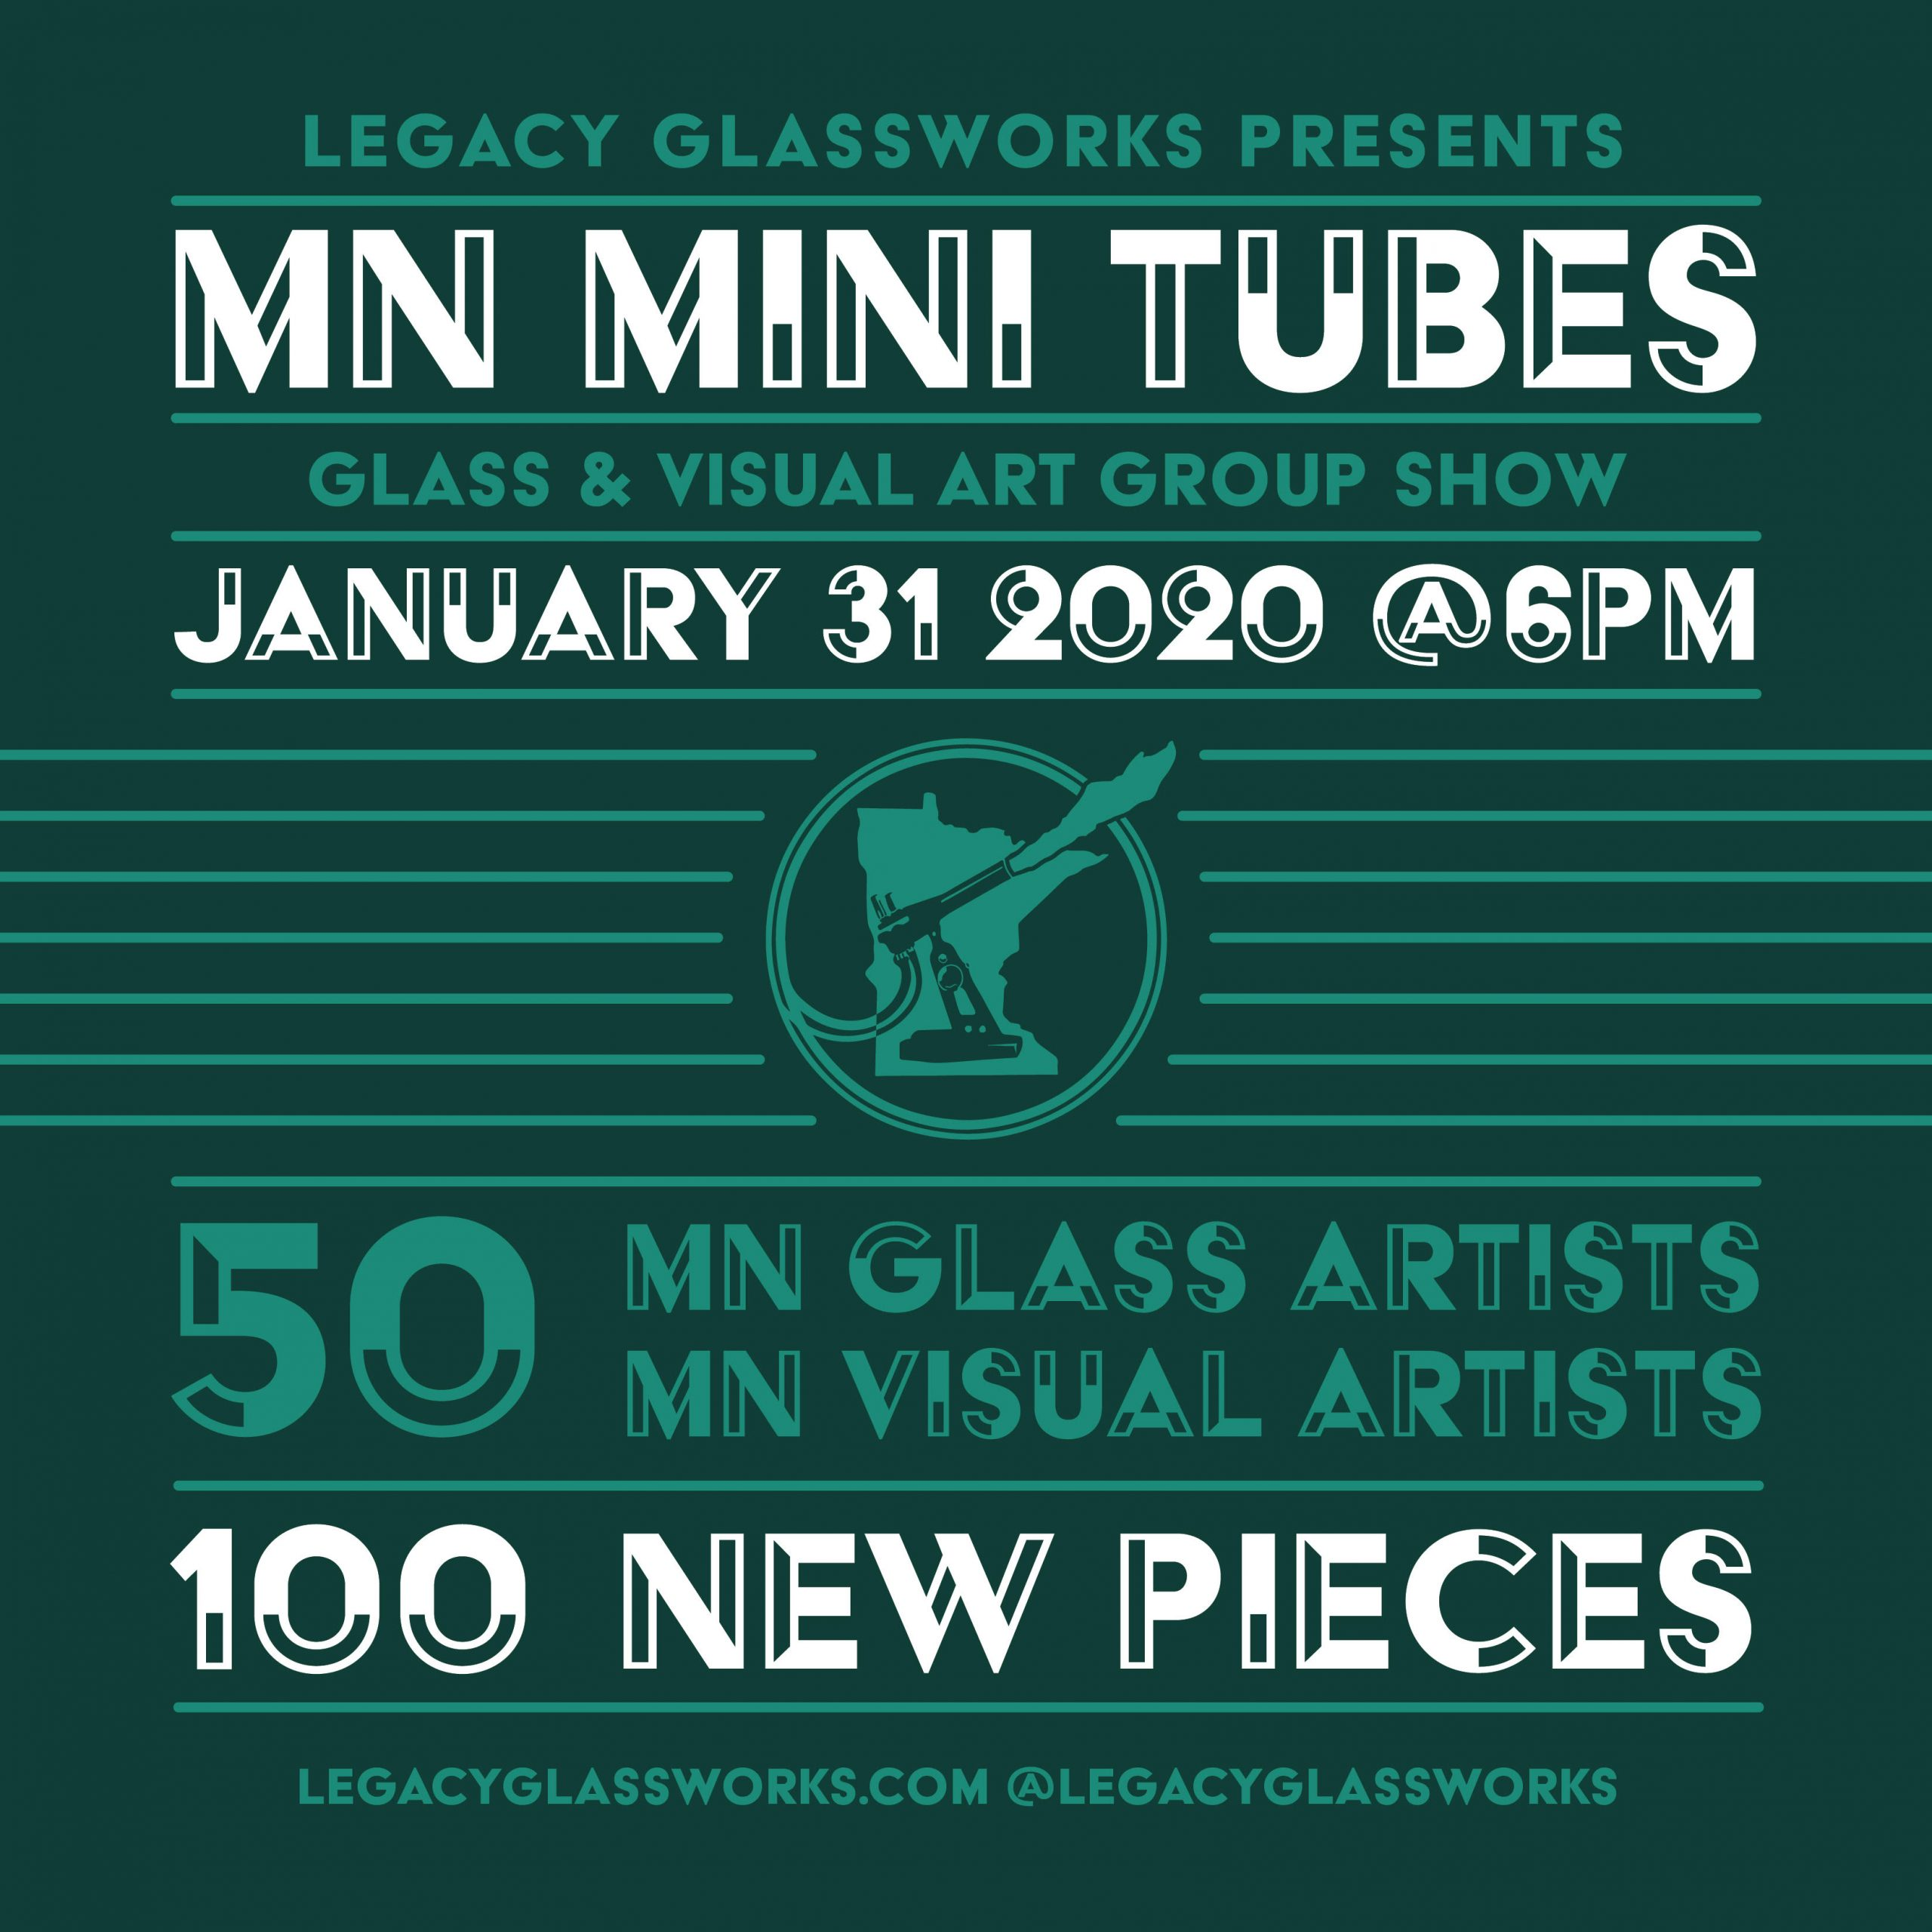 Opening Reception: MN Mini Tubes Show at Legacy Glassworks